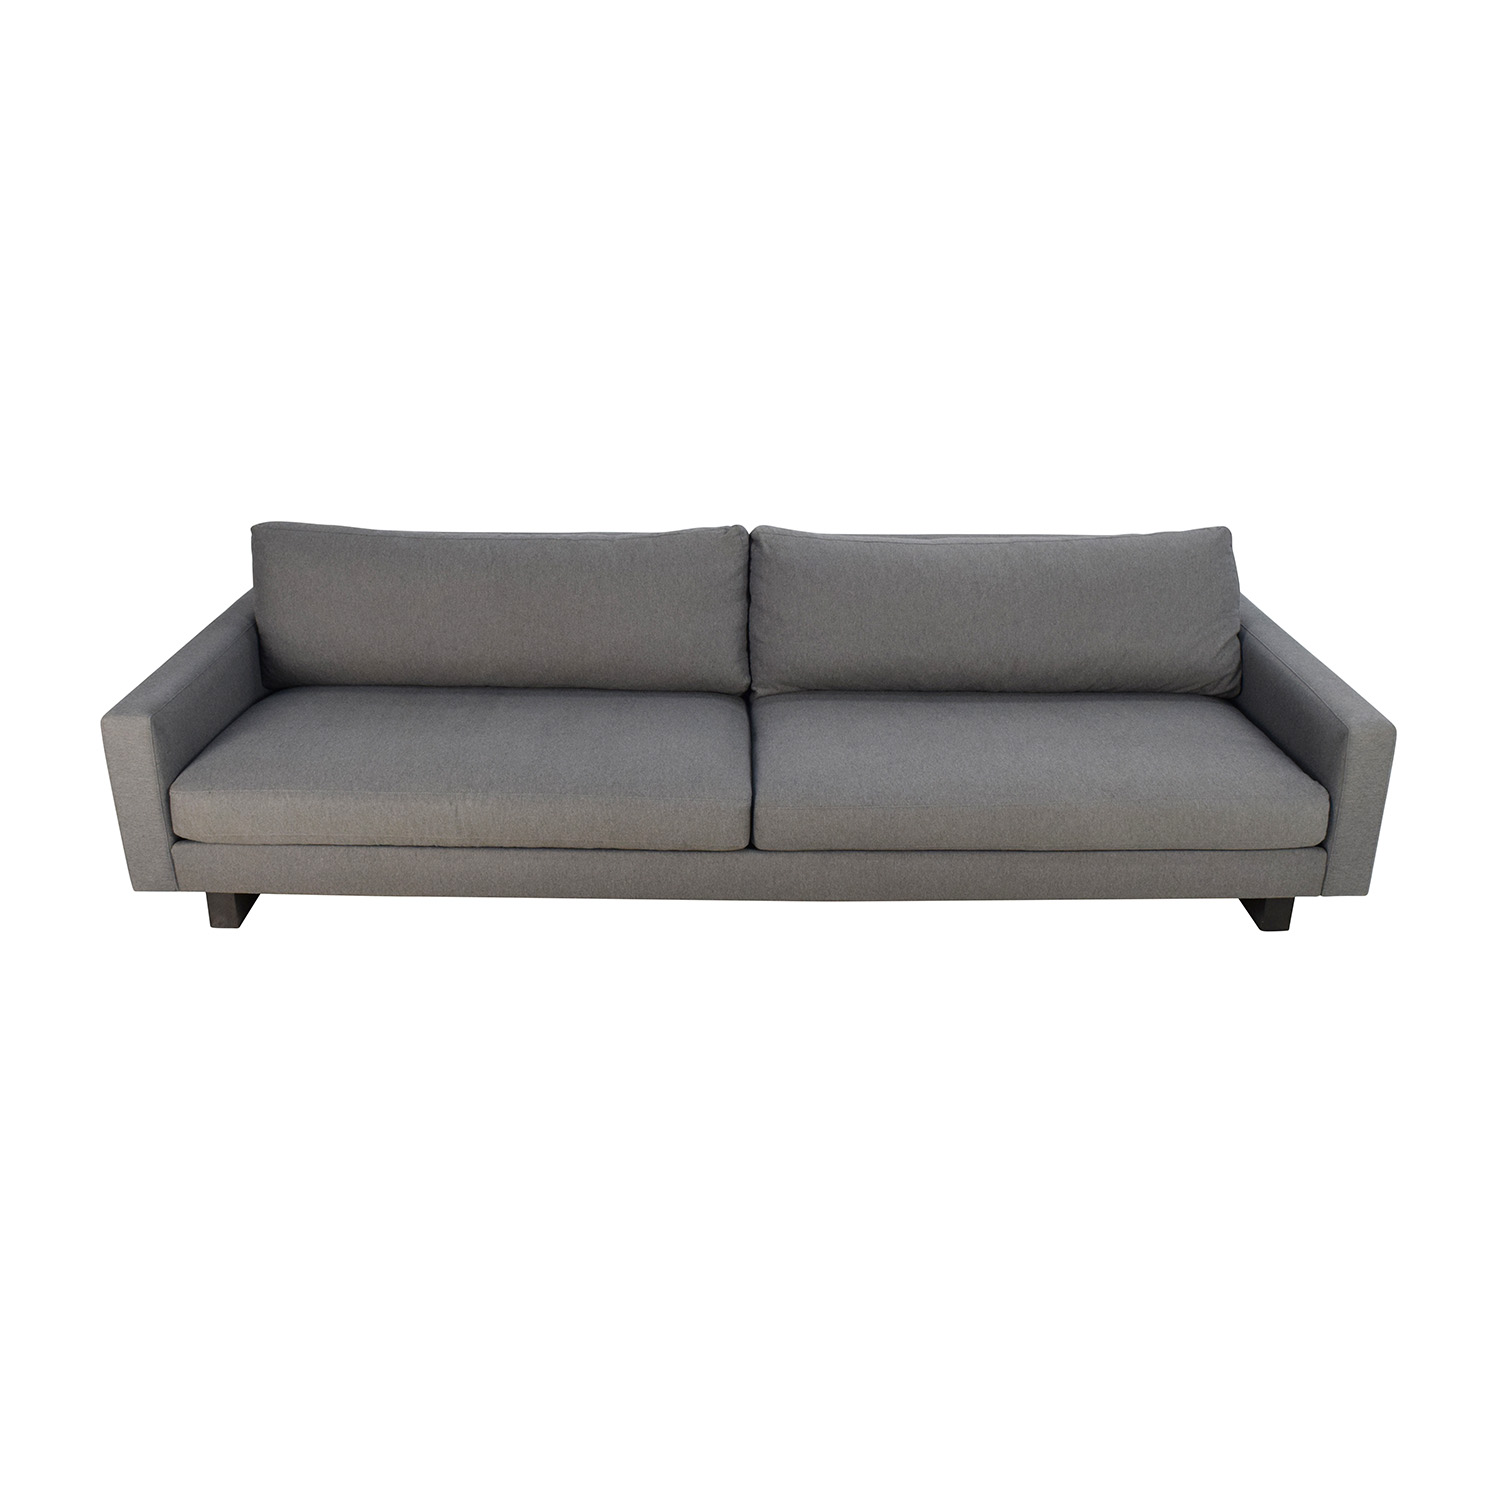 room and board hess sofa review ashley furniture palmer 79 off restoration hardware